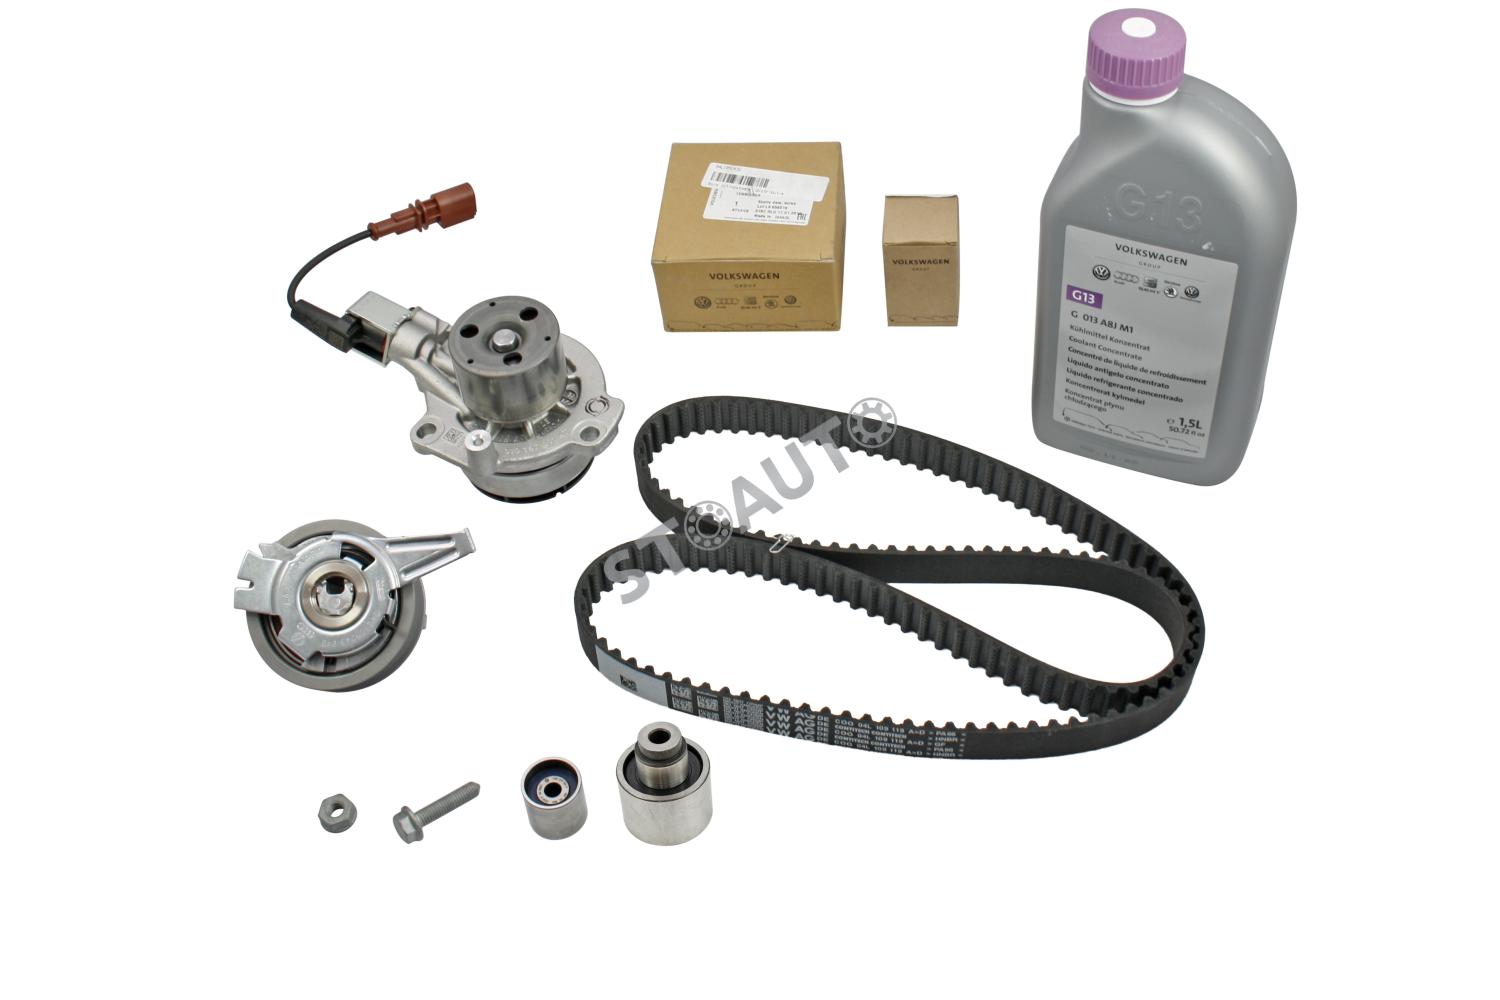 kgf71.6 KIT DISTRIBUTIE ORIGINAL VW GOLF 7 1.6 TDI CU POMPA DE APA OE